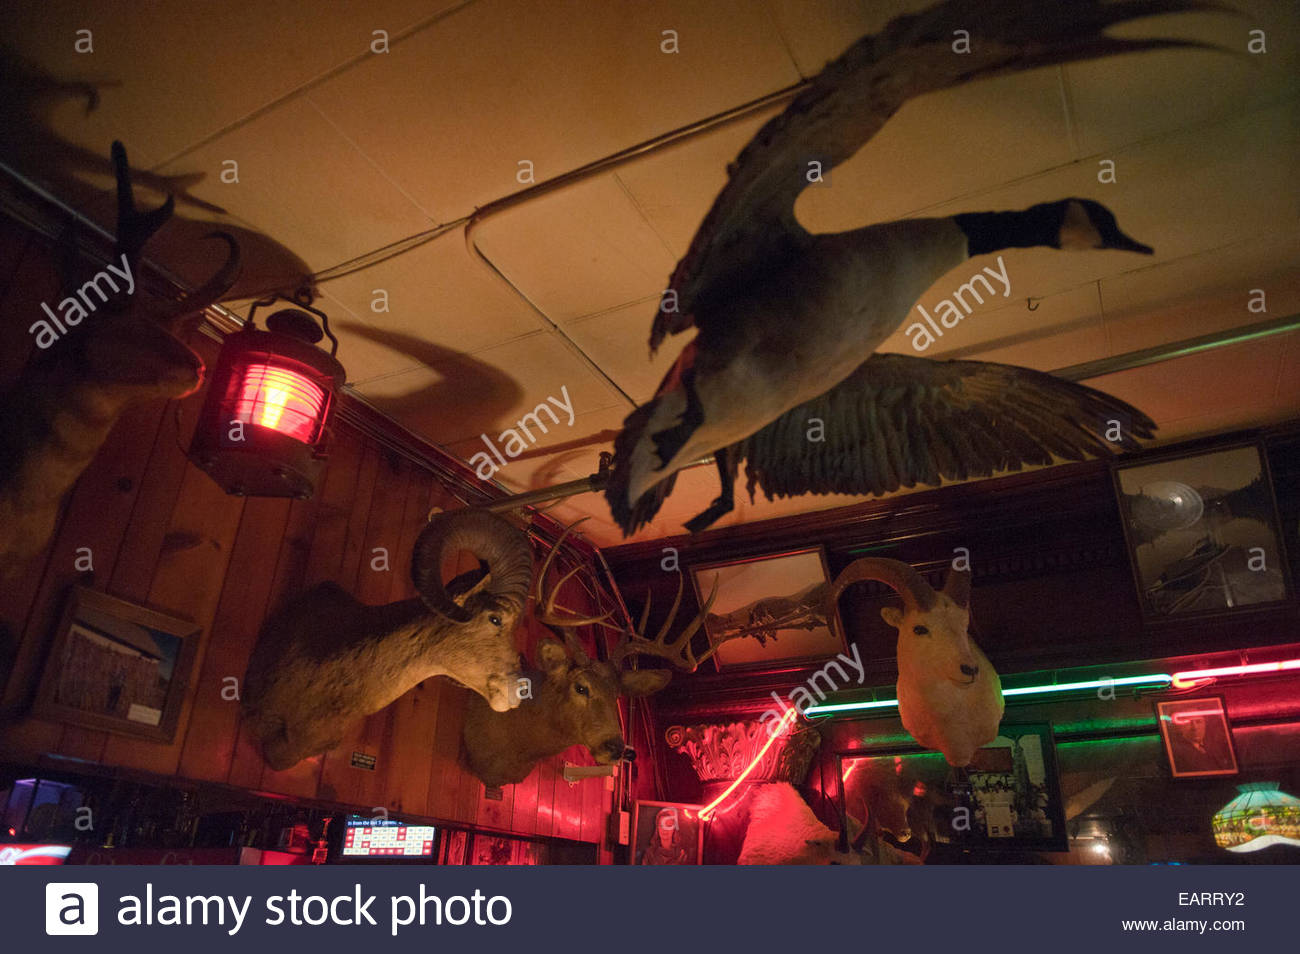 Taxidermied animals decorate a diner. - Stock Image